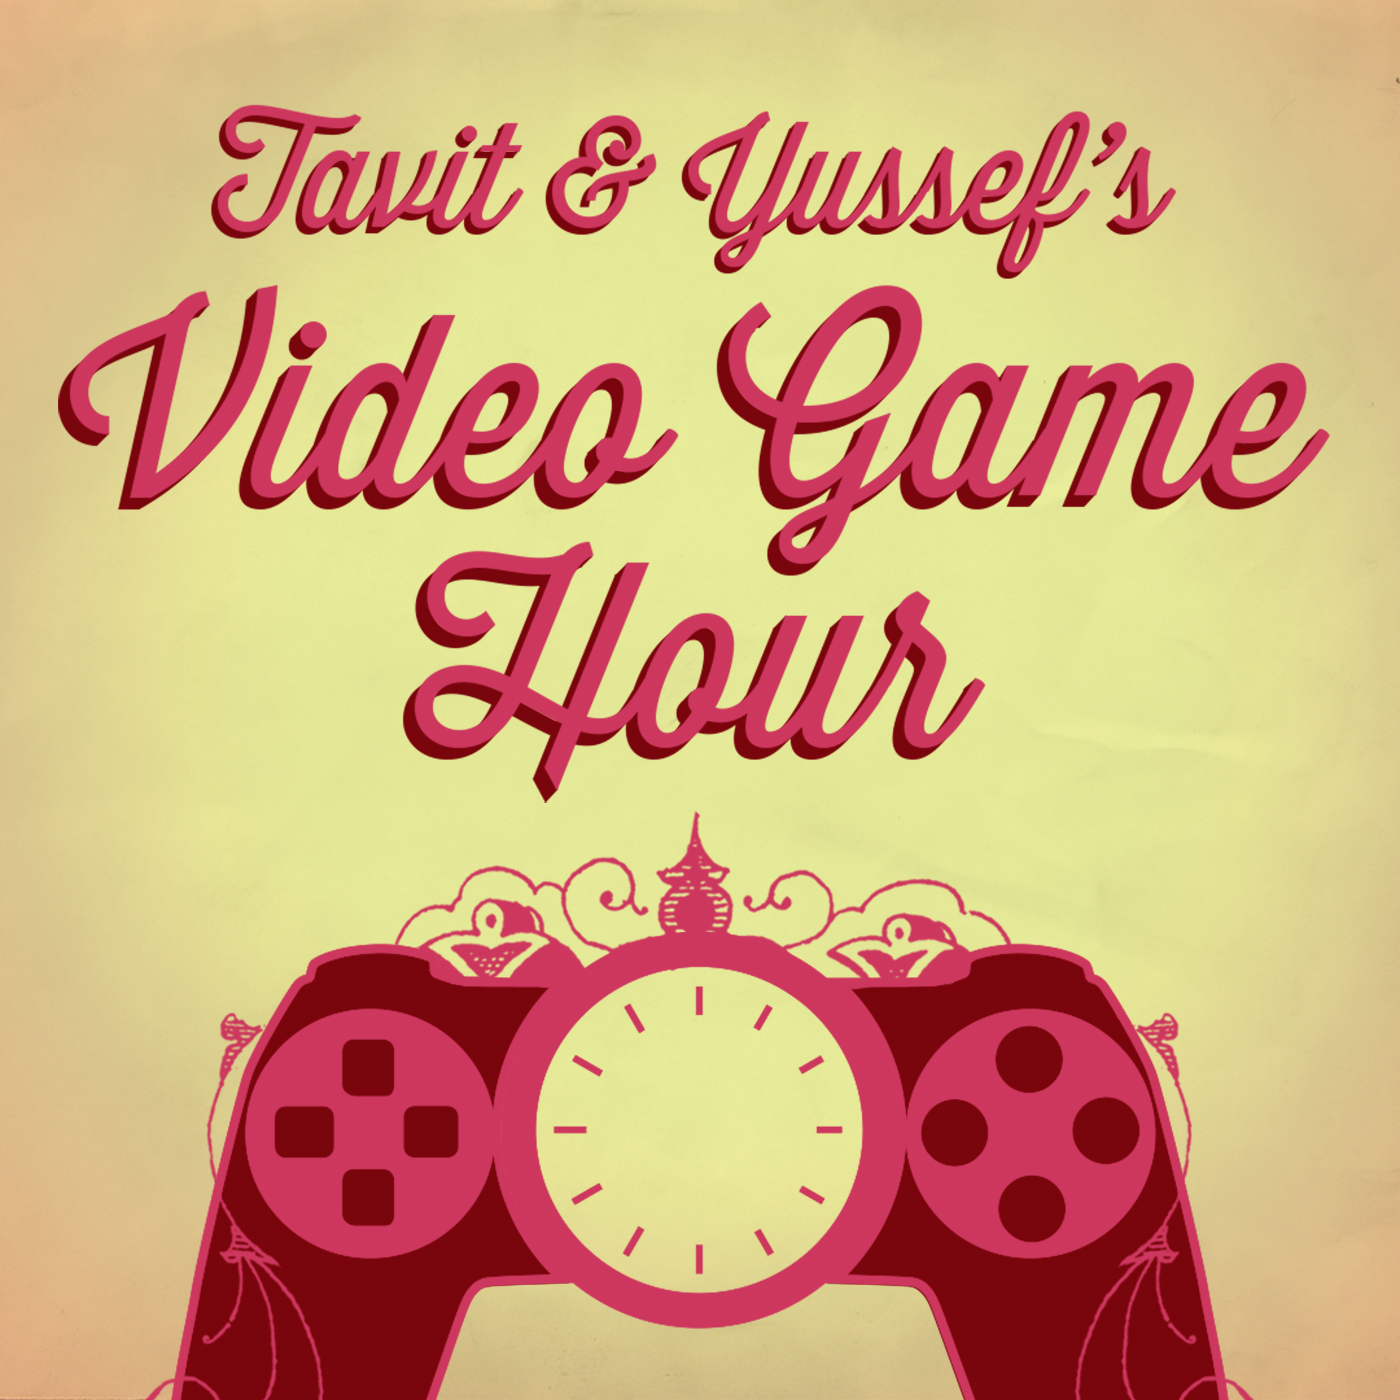 Tavit and Yussef's Video Game Hour